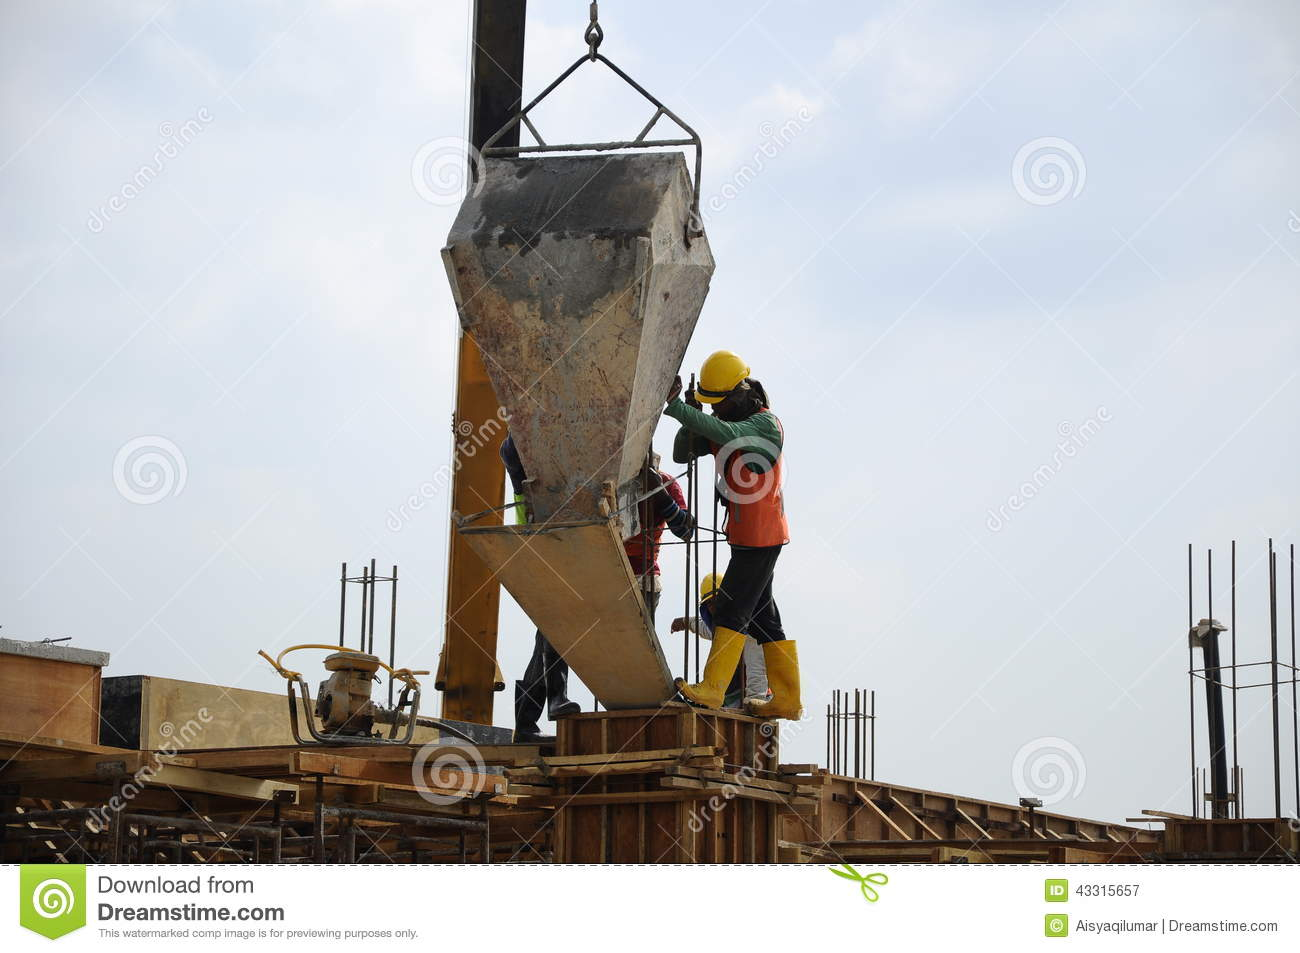 A Group Of Construction Workers Pouring Concrete Into Formwork.